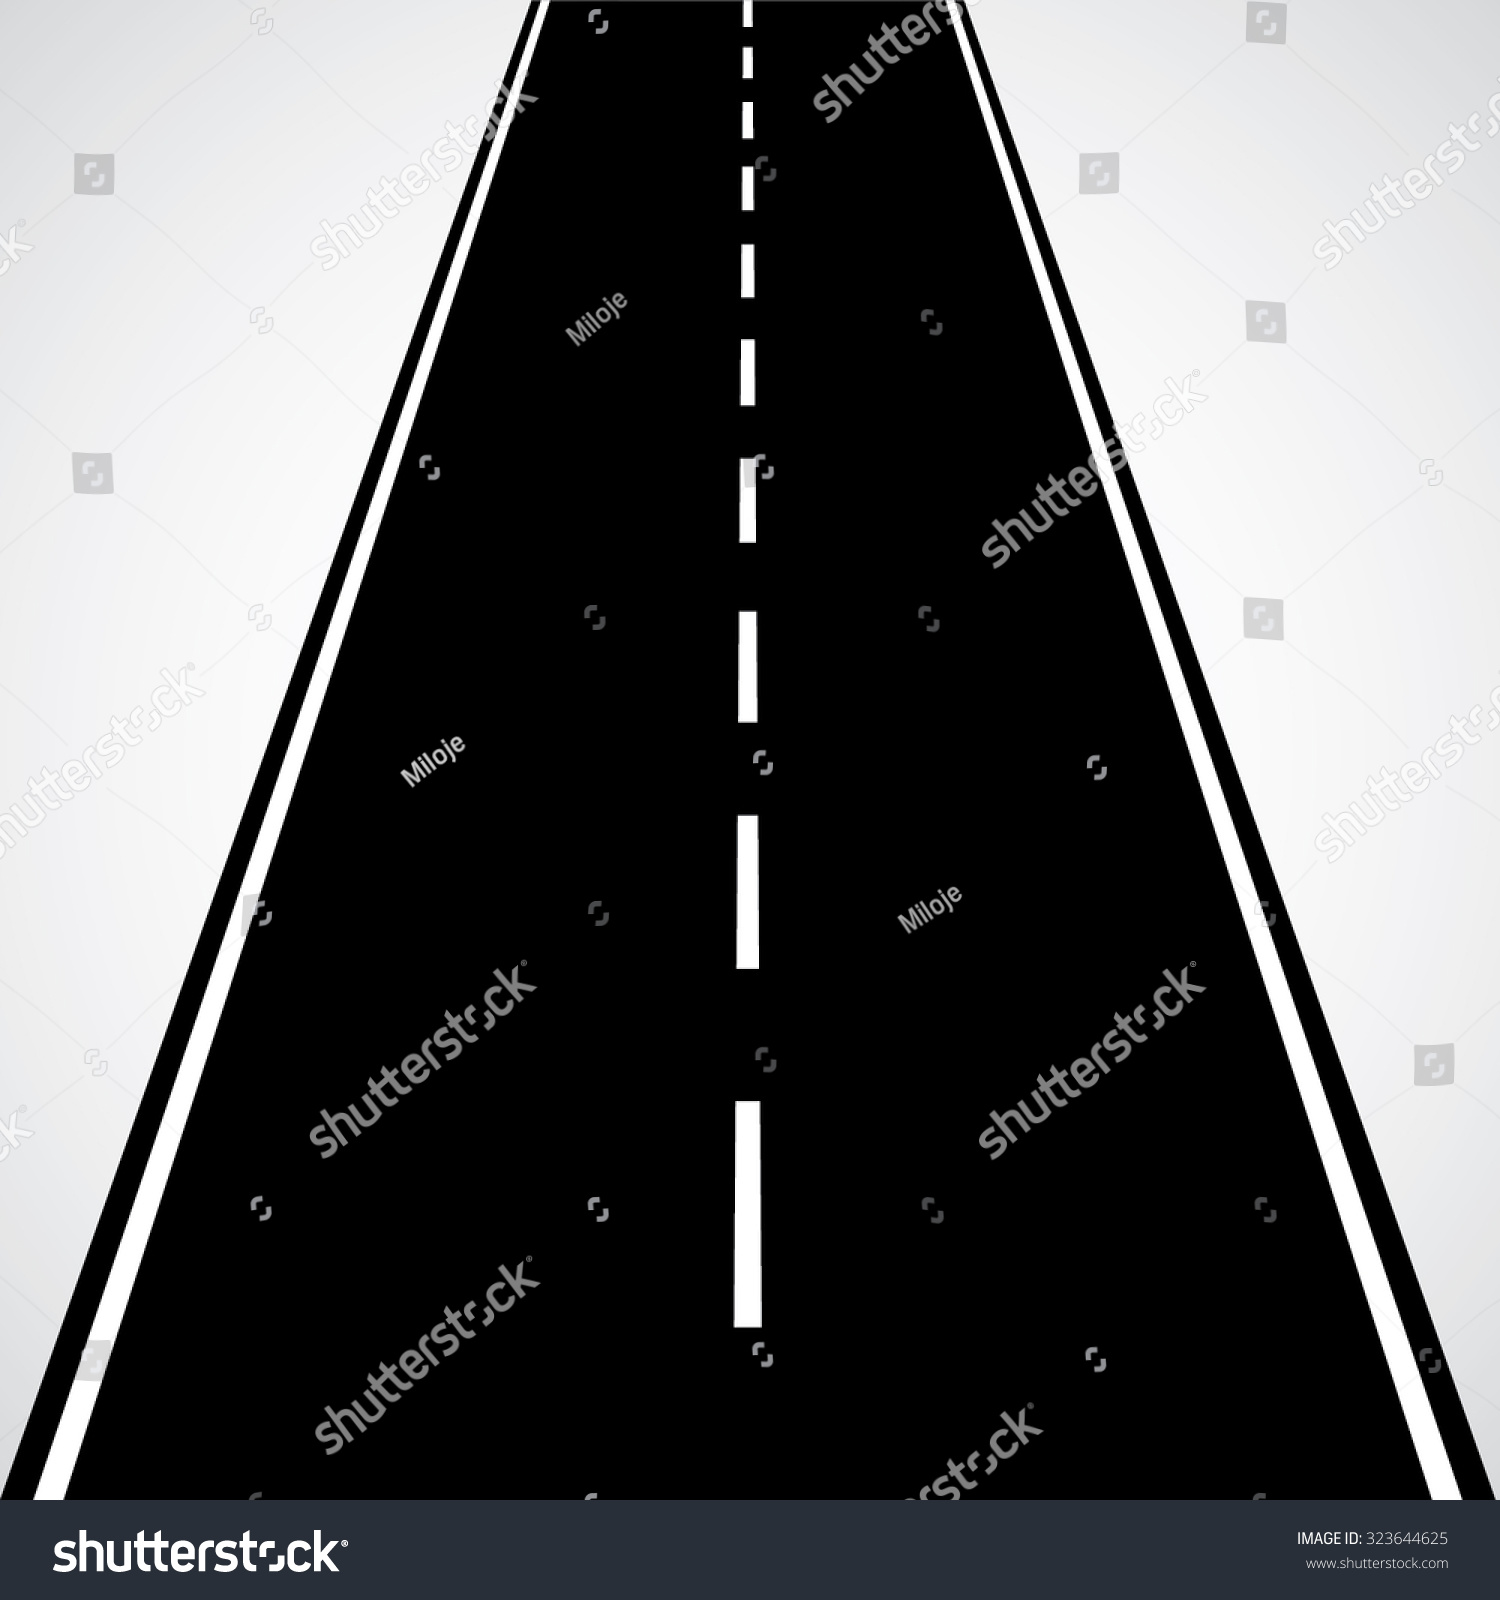 Straight Road White Lines Dashed Lines Stock Vector HD (Royalty Free ... for Straight Road Vector Free Download  70ref